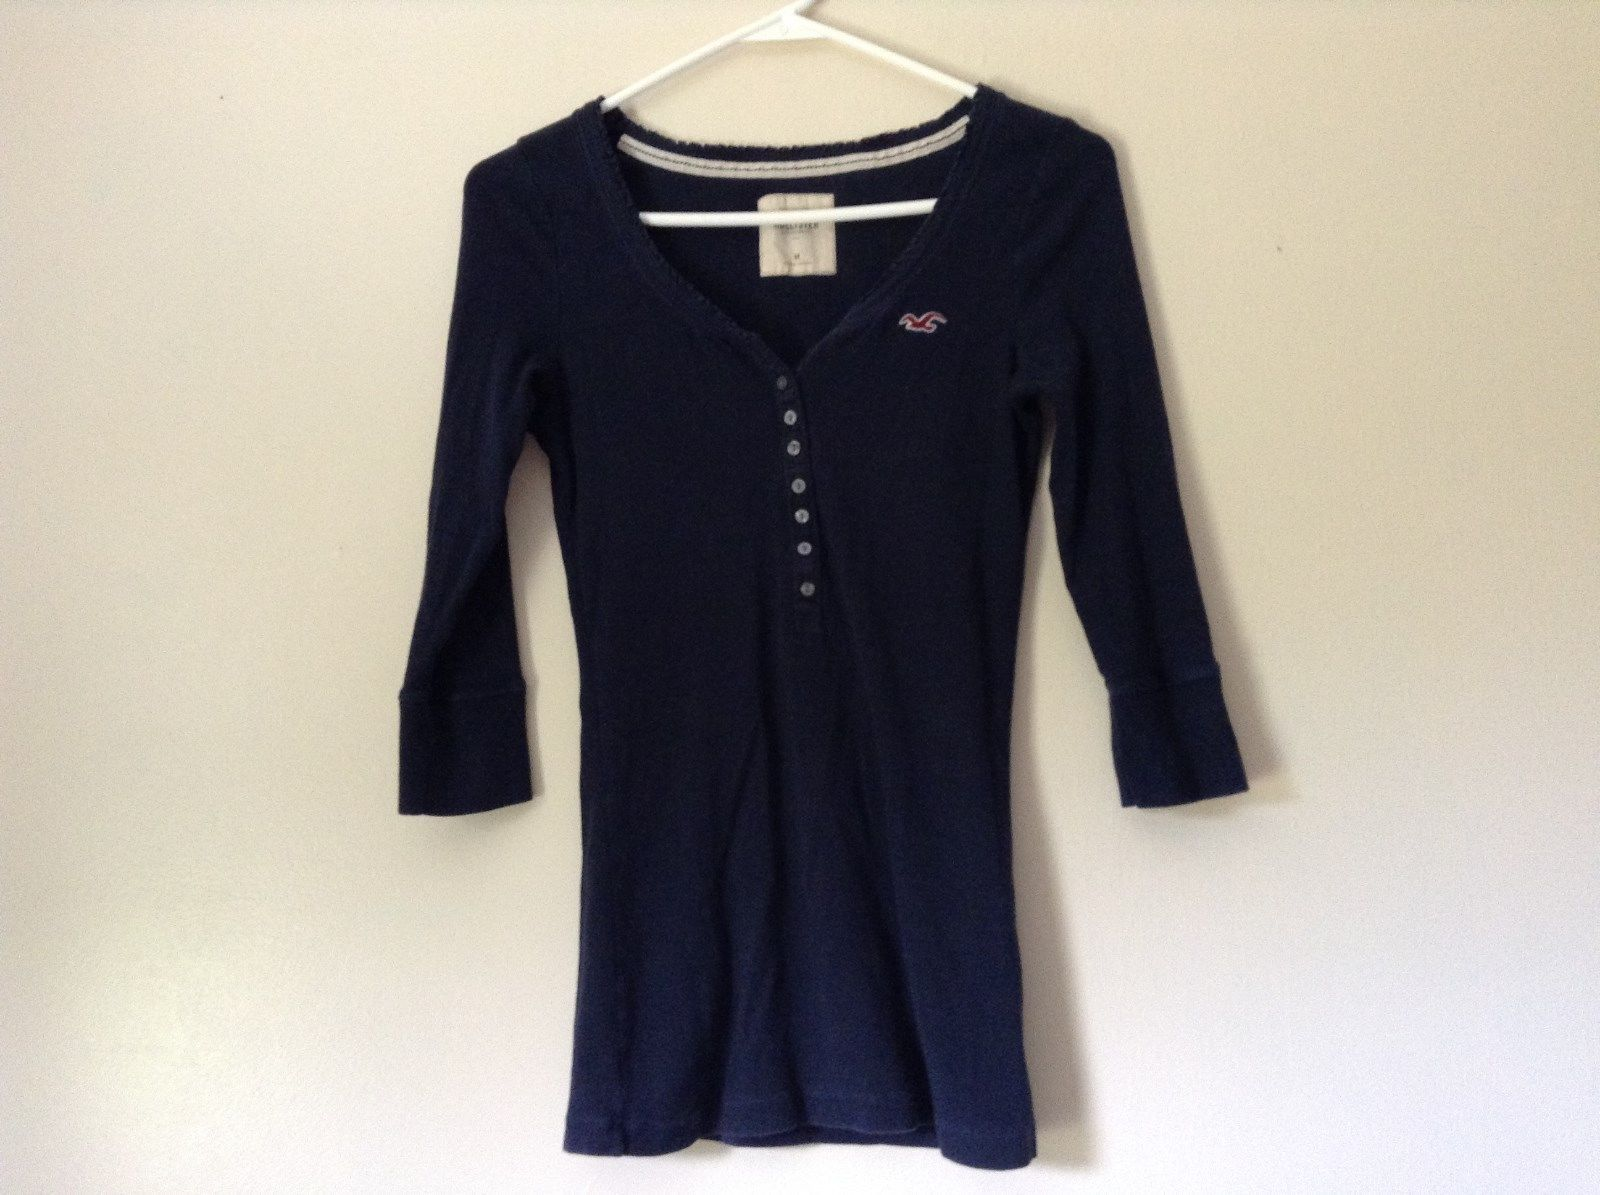 Hollister Size M Navy Blue Three Quarter Length Sleeves Shirt Buttons at Neck